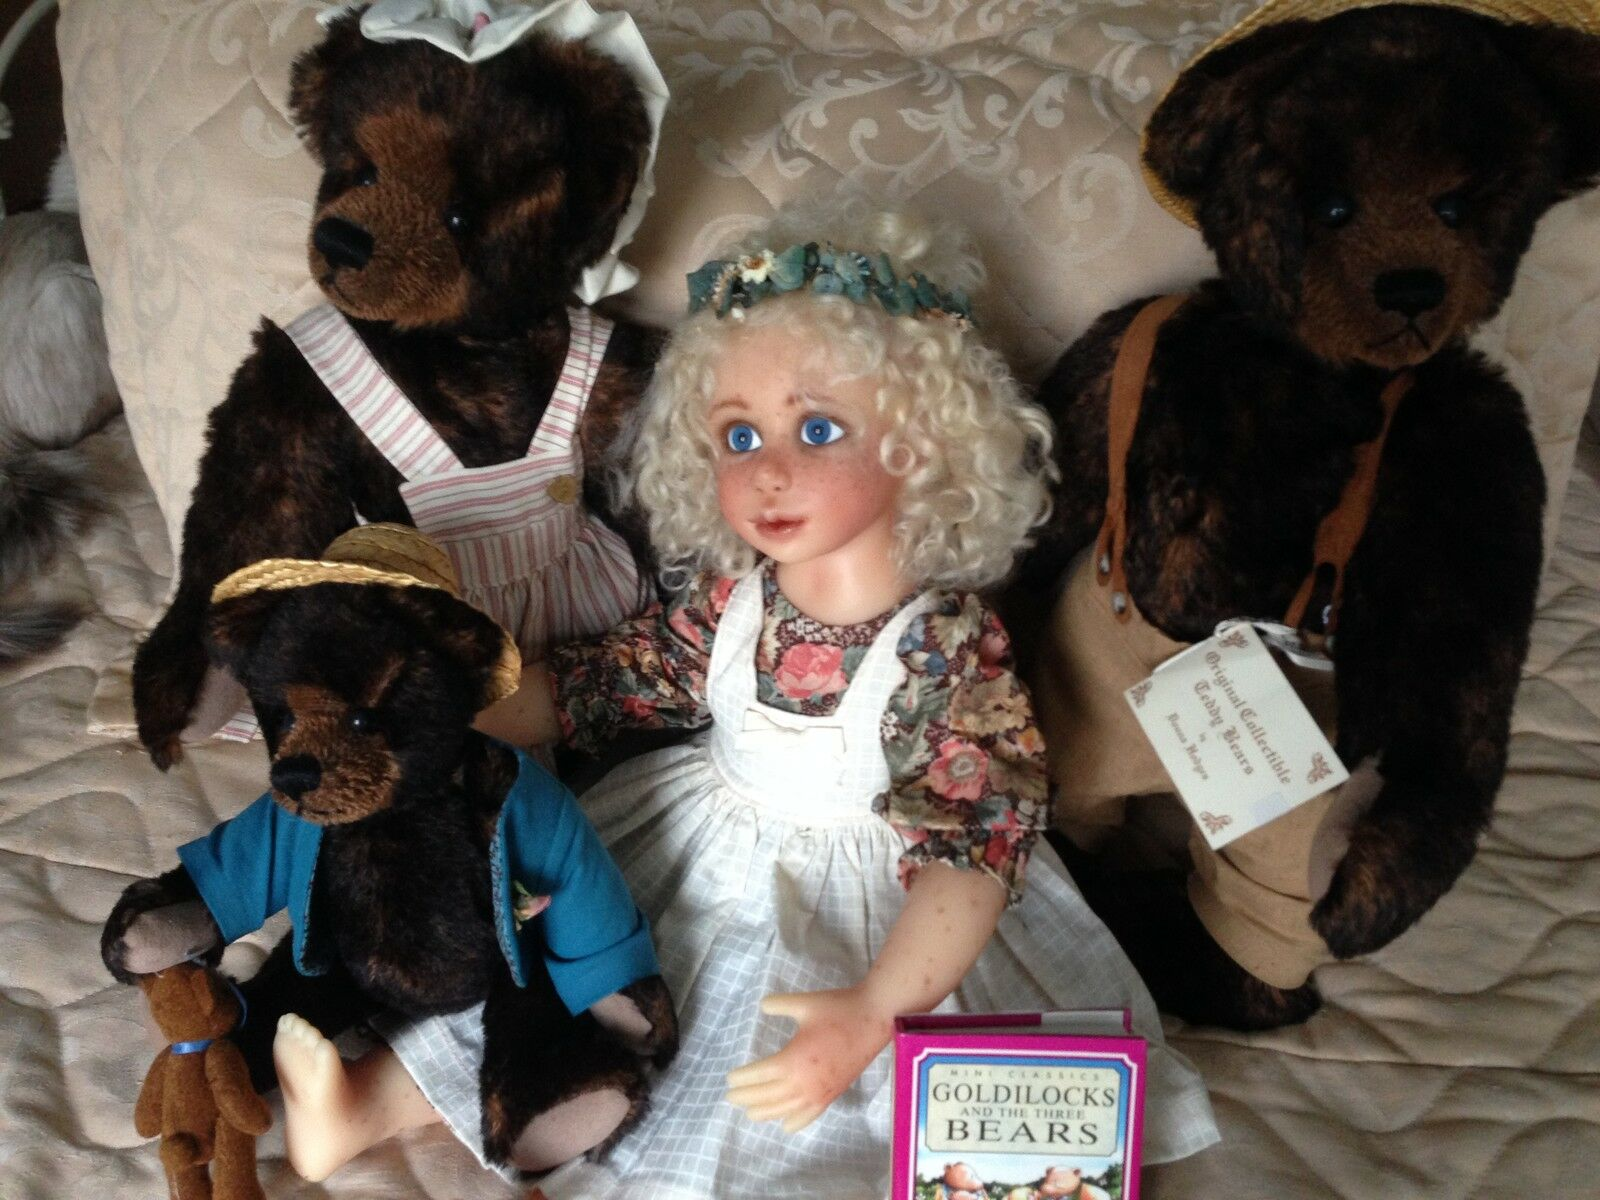 Exceptional oroilocks & 3 Bears Handcrafted Set by mujer Hodges  24